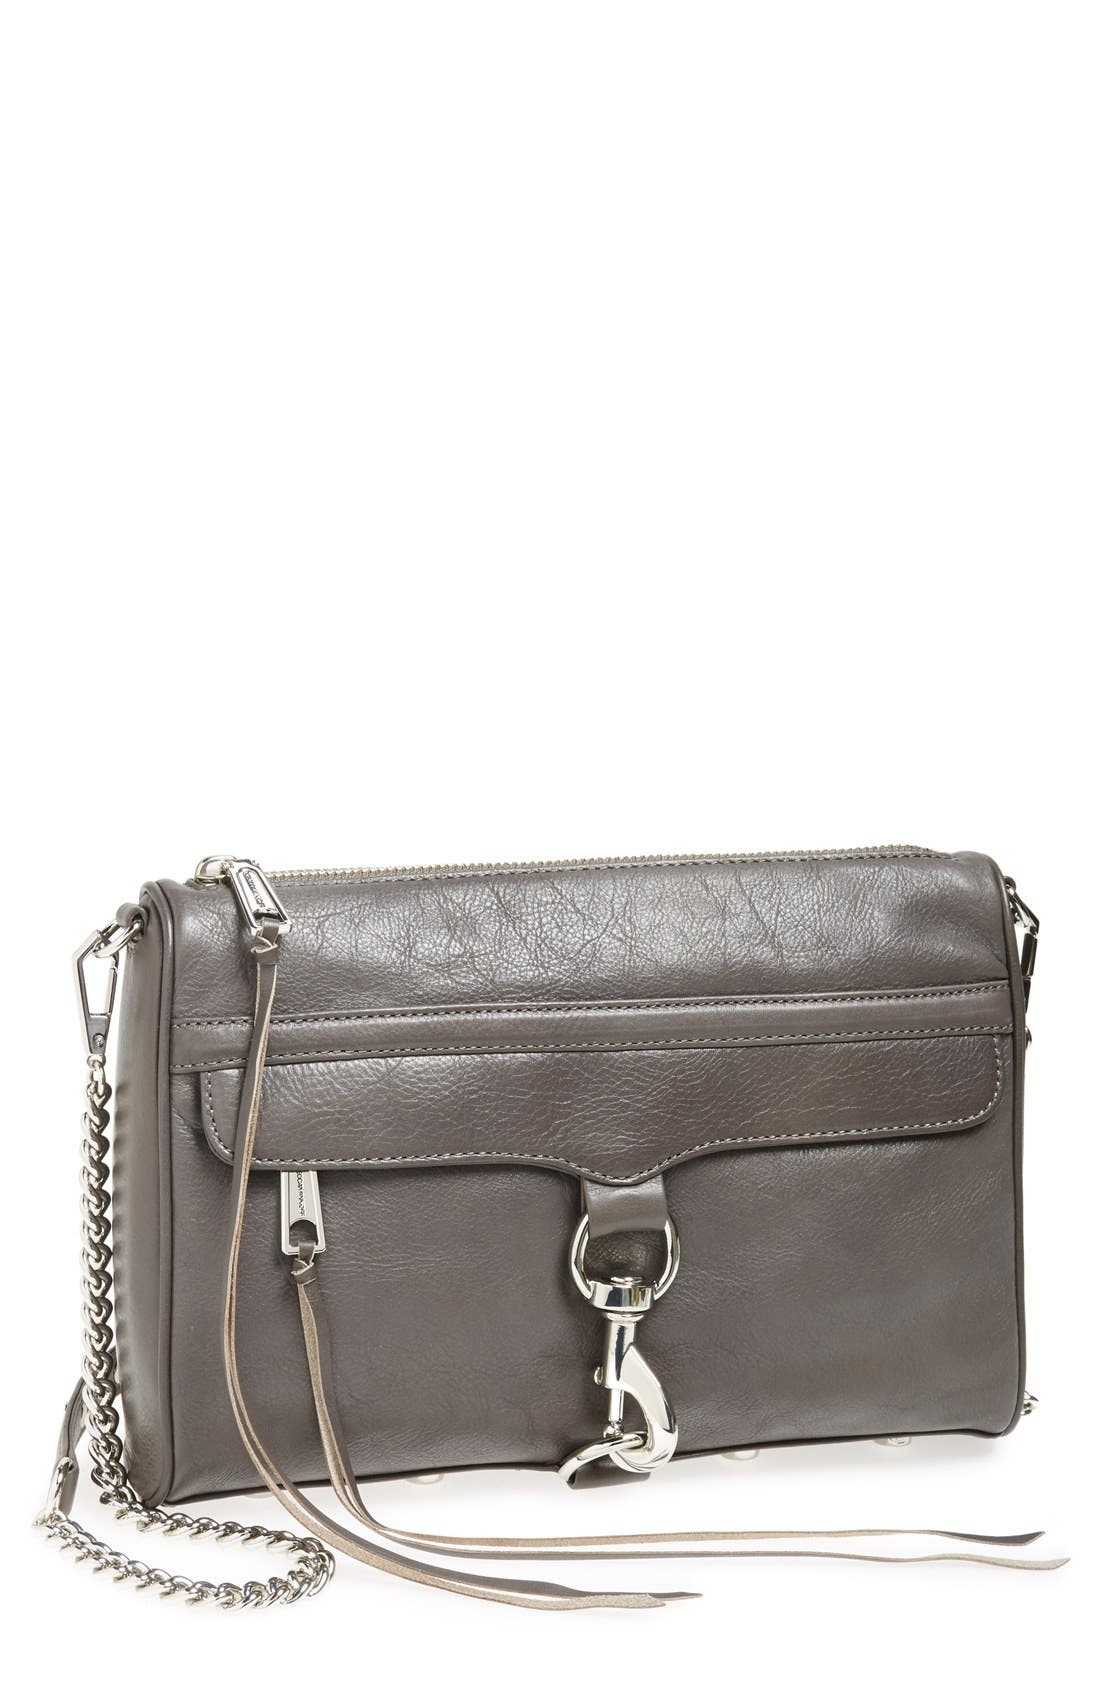 Alternate Image 1 Selected - Rebecca Minkoff 'MAC' Convertible Crossbody Bag